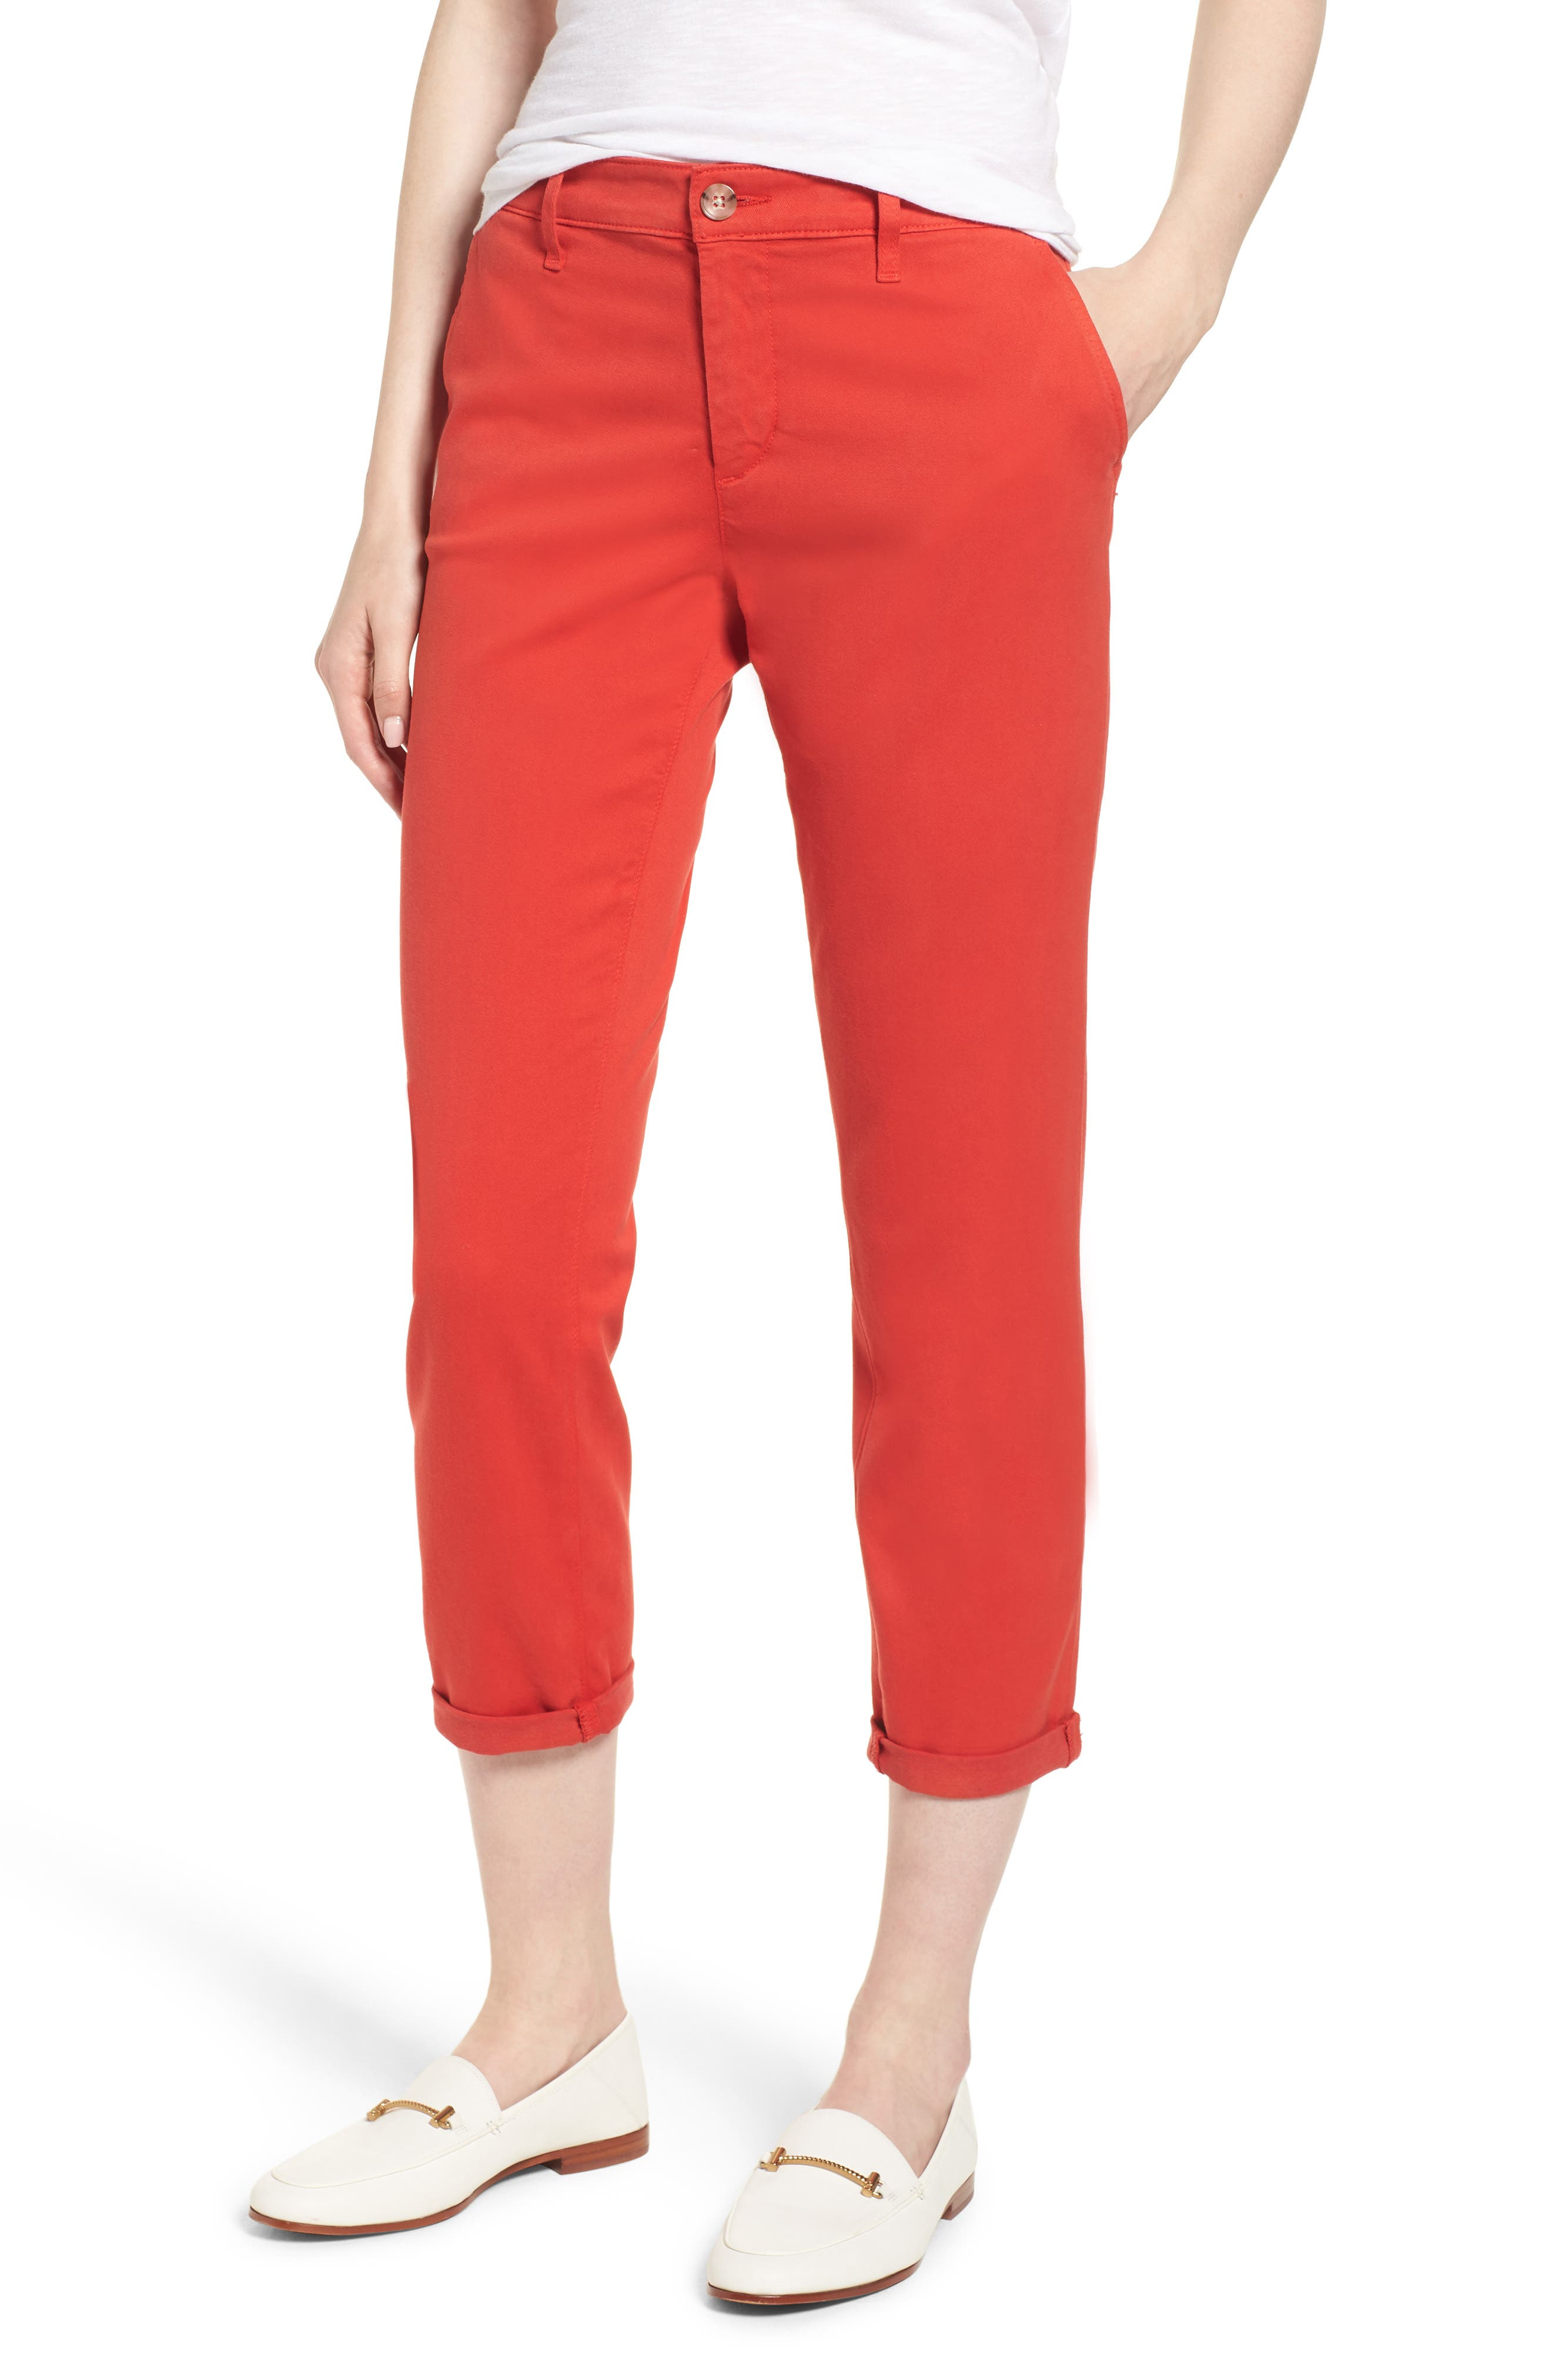 Caden Crop Twill Trousers,                             Main thumbnail 1, color,                             Red Poppy